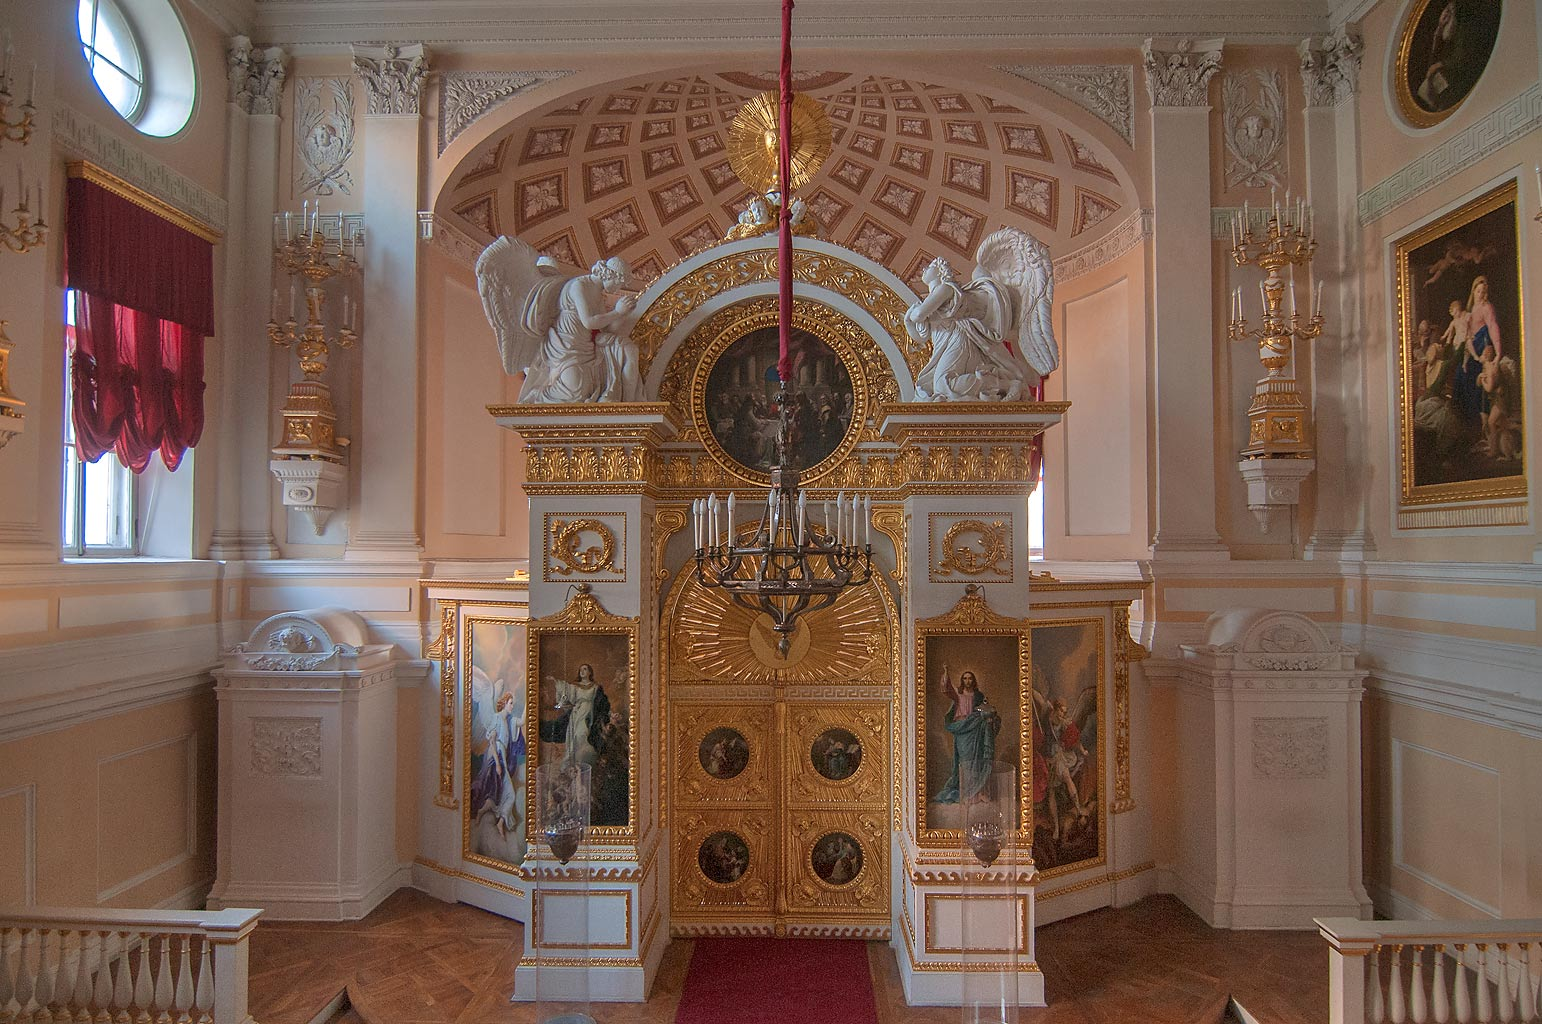 A church in Pavlovsky Palace. Pavlovsk, a suburb of St.Petersburg, Russia